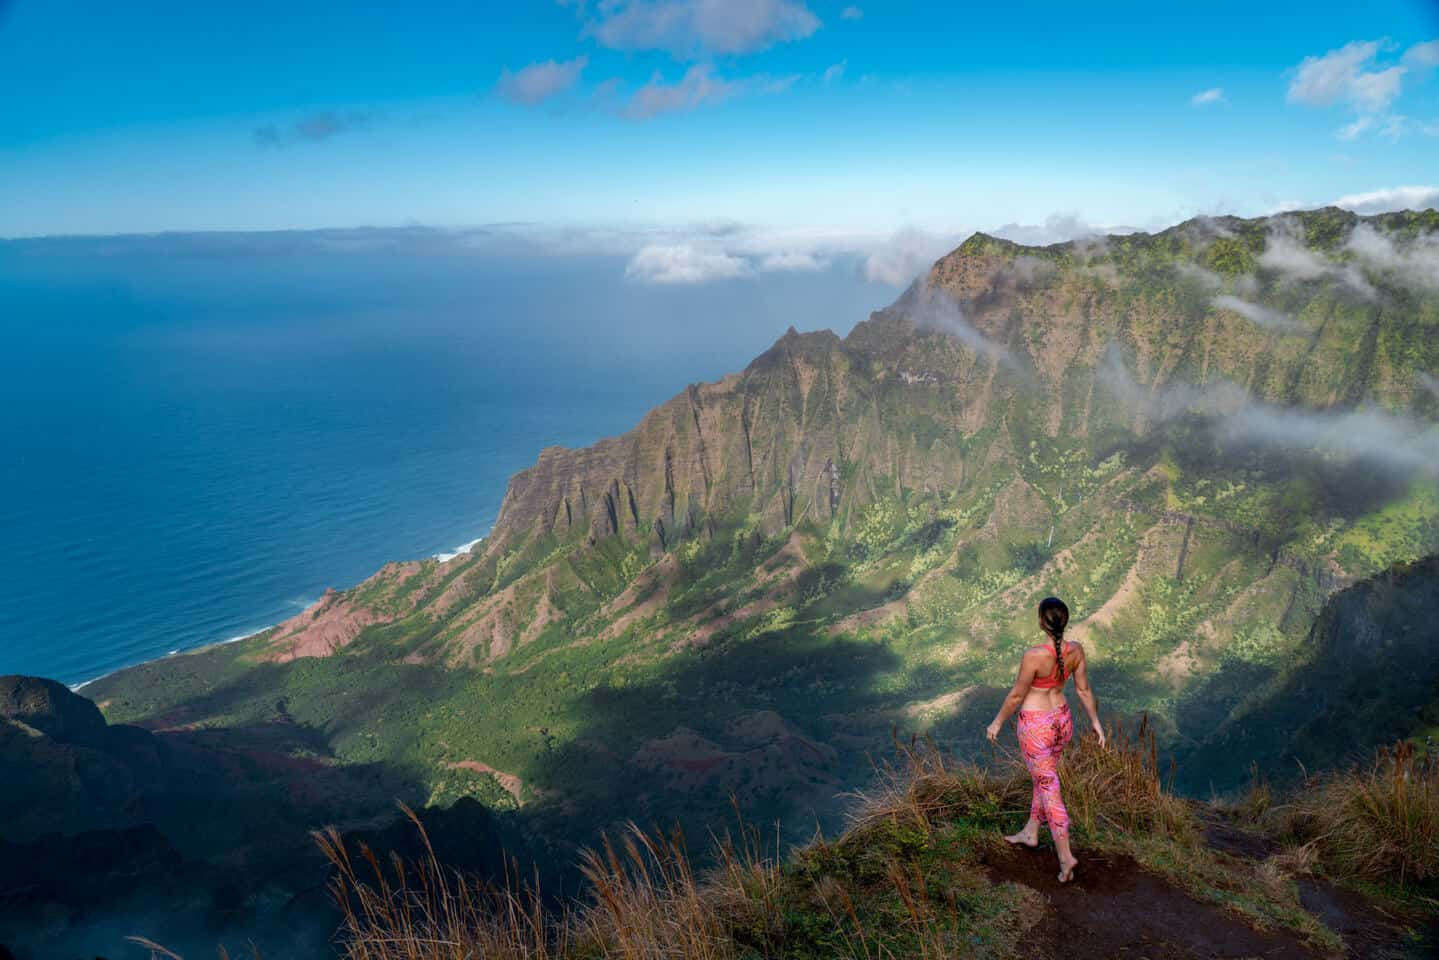 The views of the Na Pali coast from the Kalepa Ridge are the best in all of Kauai.